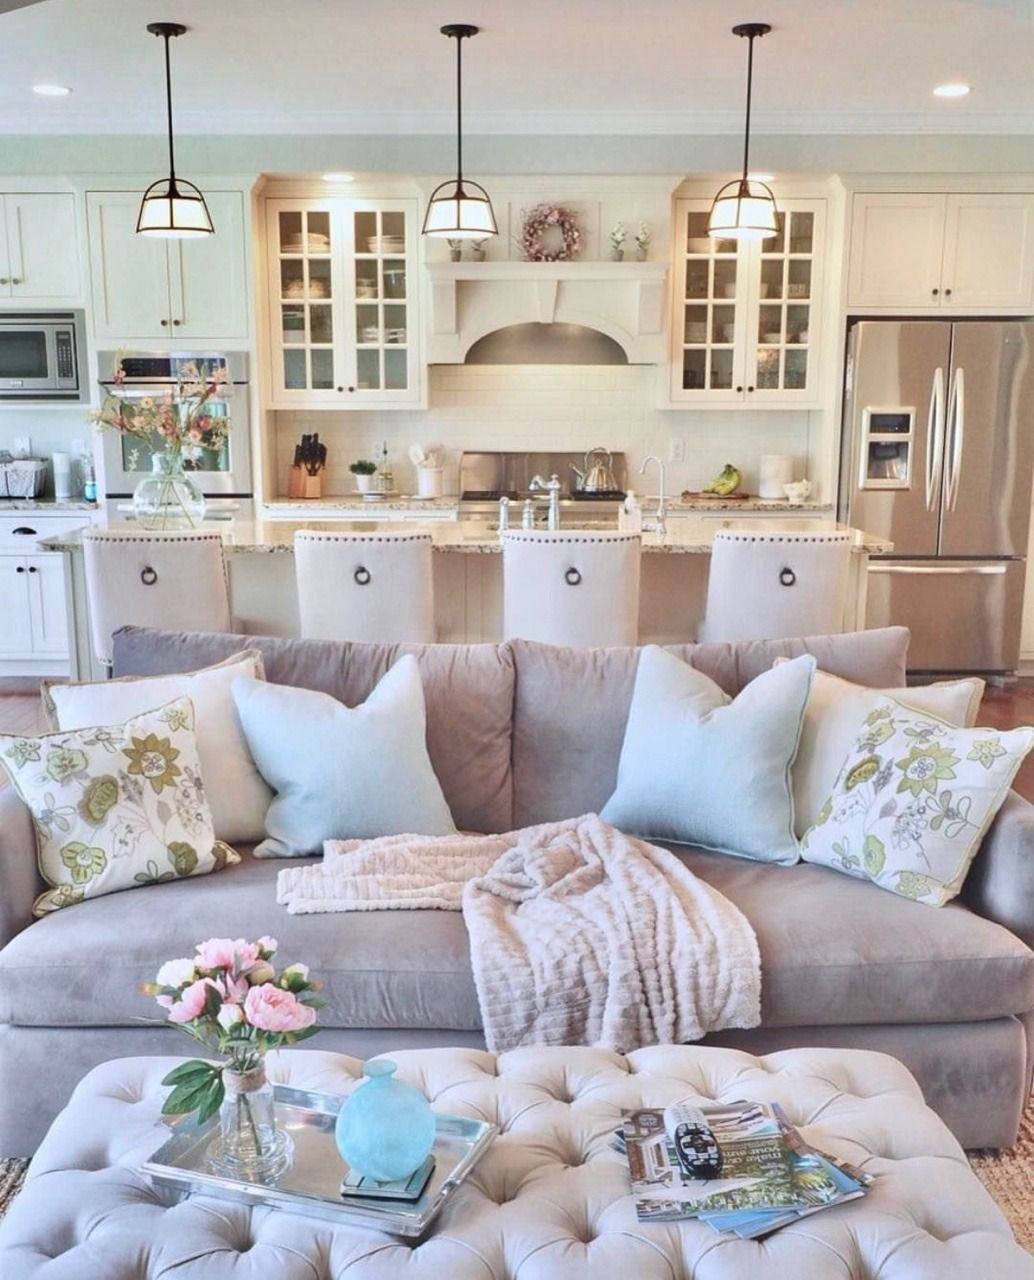 Southern Charm Living Room: Rustic Chic, Country Classic, Southern Prep